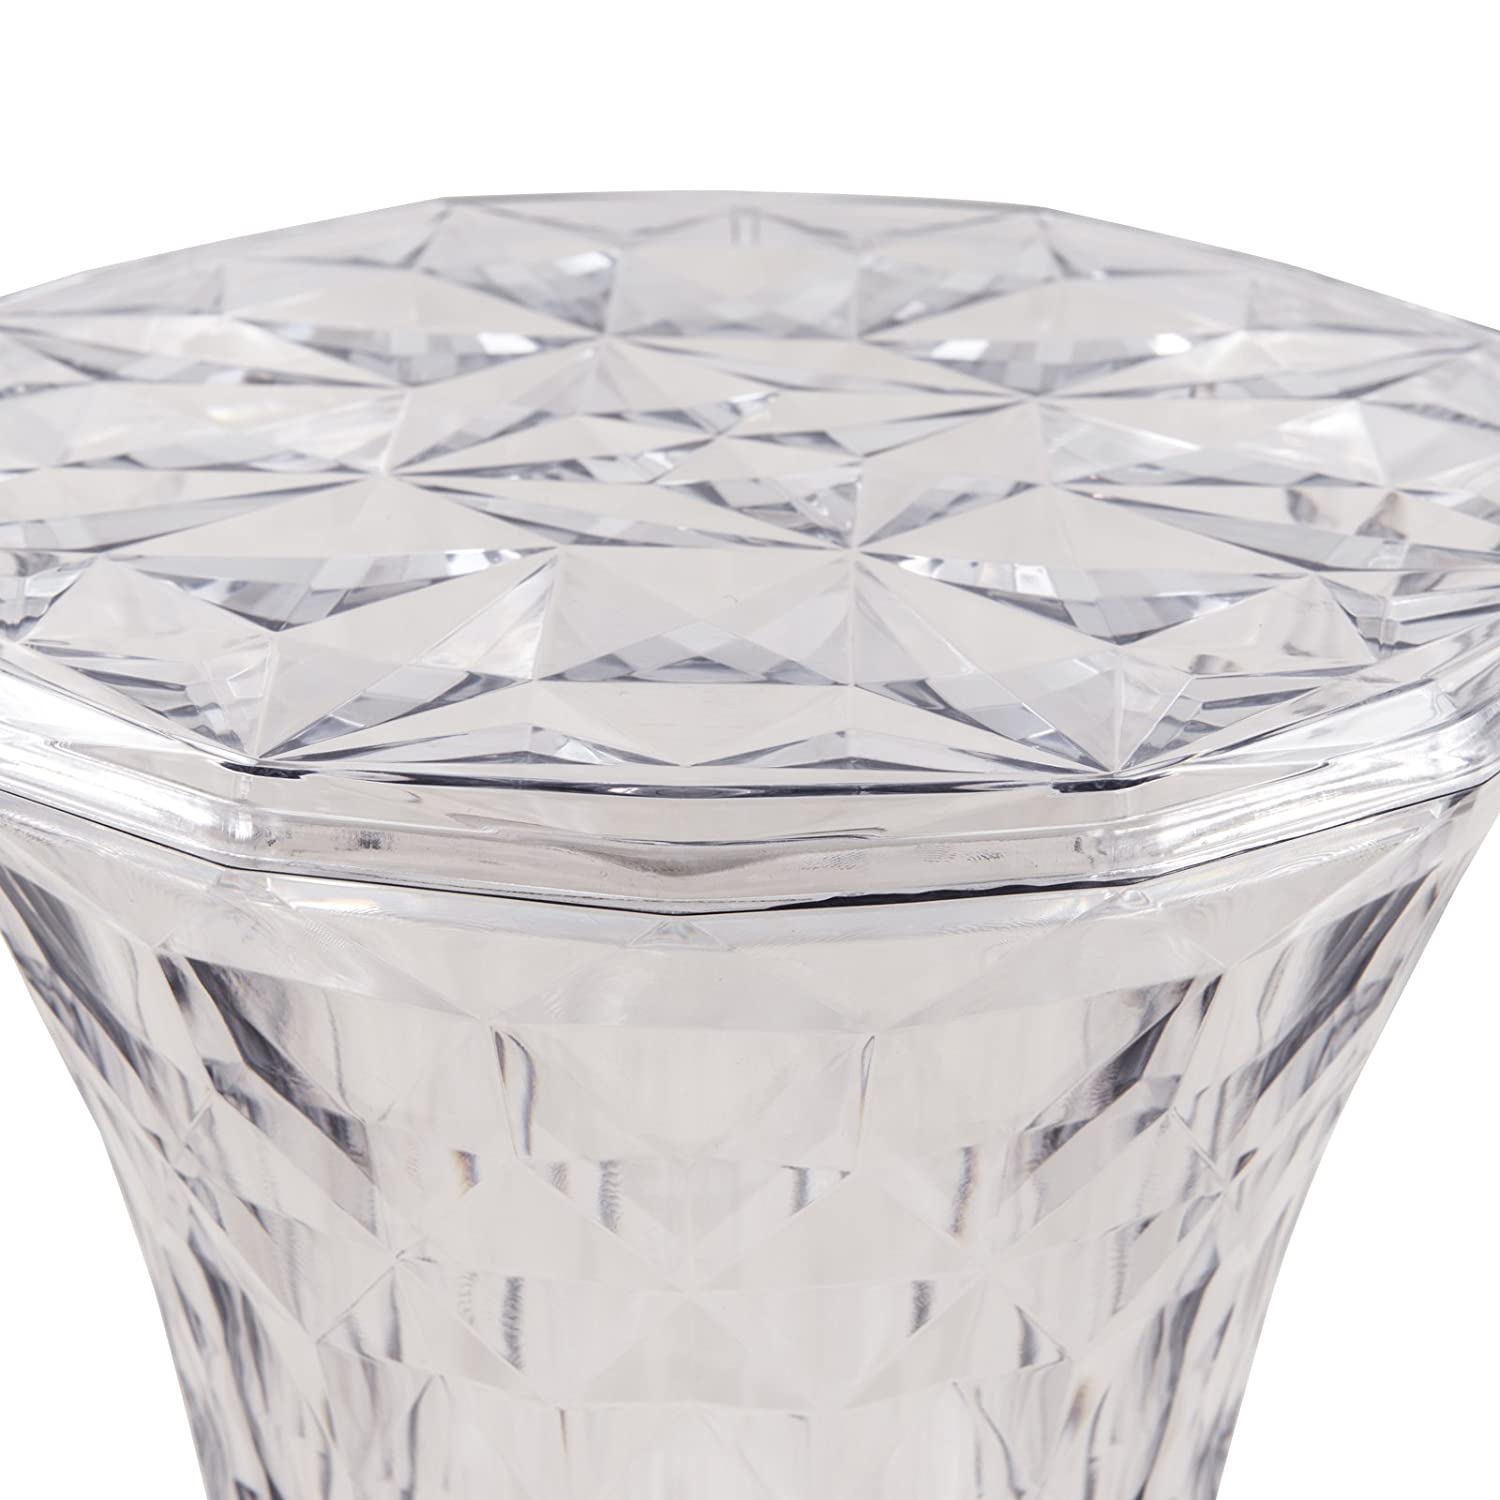 LeisureMod Diamond Shaped Modern Vanity Clio Stool Side Table Indoor and Outdoor Use Clear